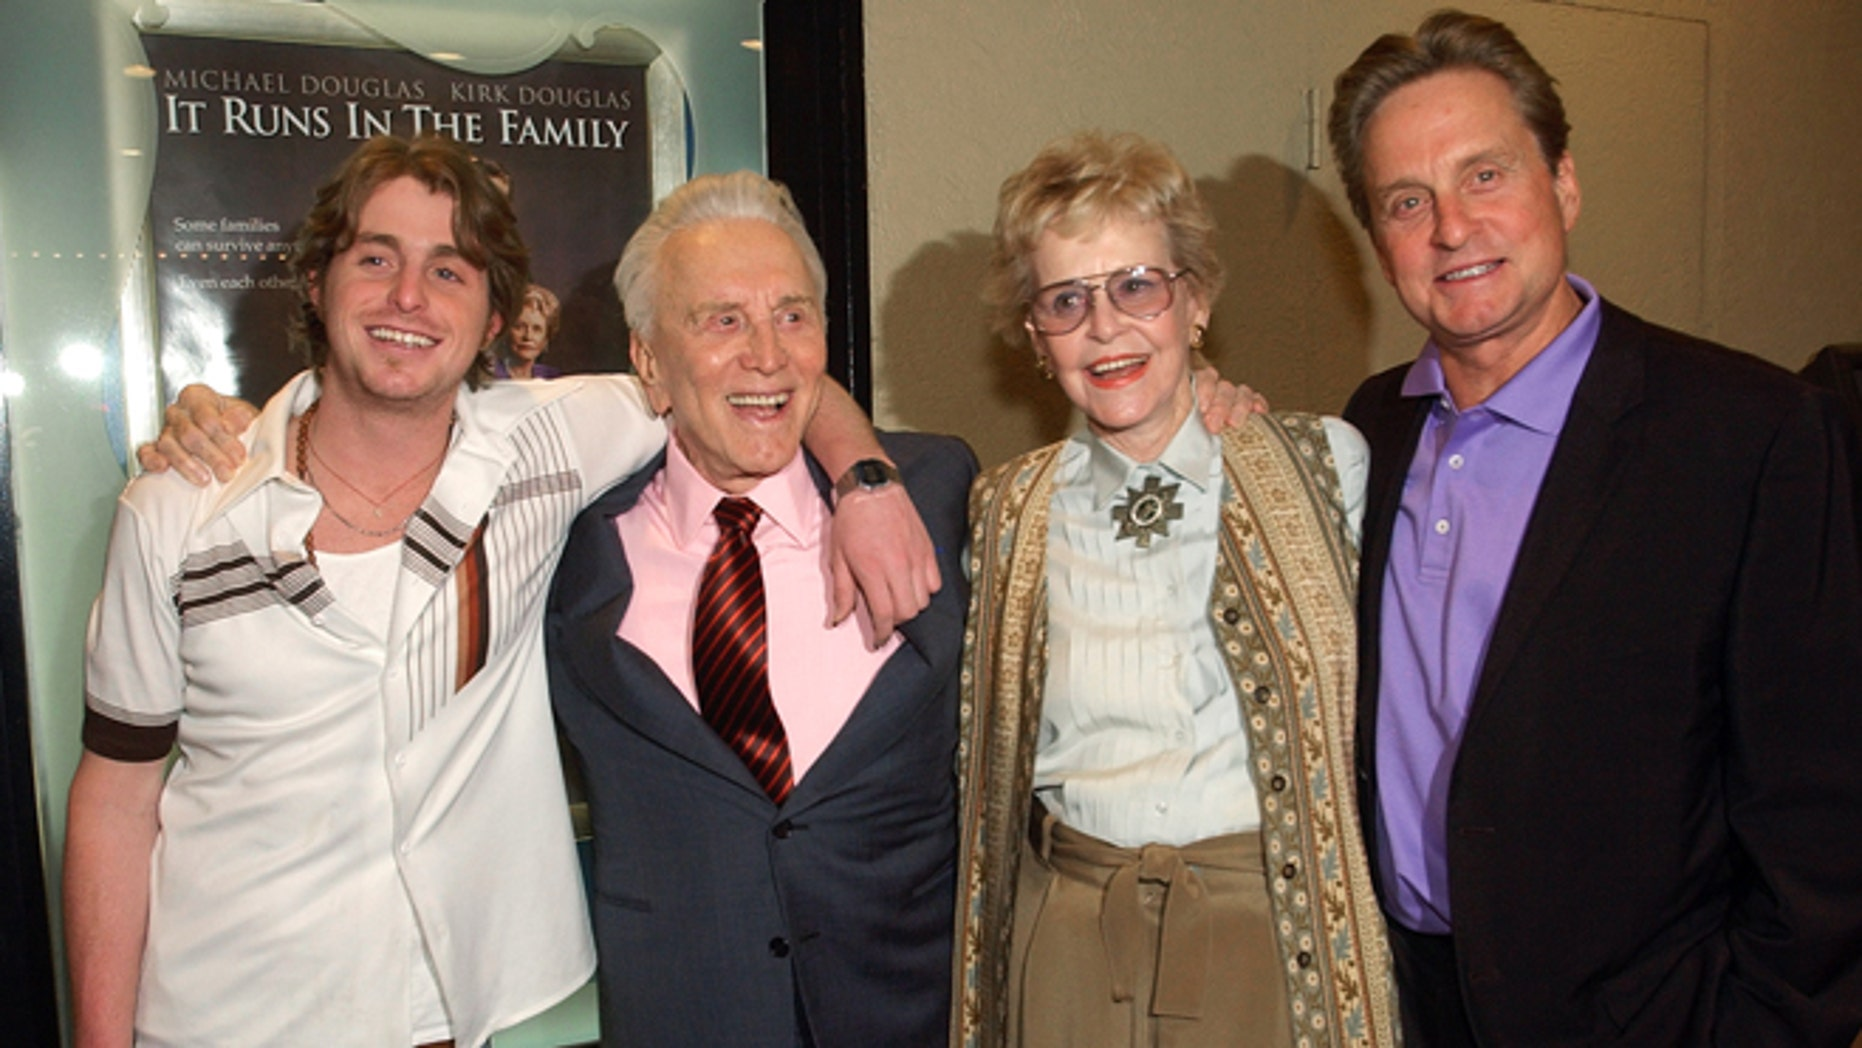 "April 7, 2003: Actor Kirk Douglas, second from left, poses with his ex-wife Diana Douglas, second from right, their son Michael Douglas, right, and Michael's son Cameron Douglas, left, at a special screening of the film ""It Runs in the Family"" in Los Angeles."